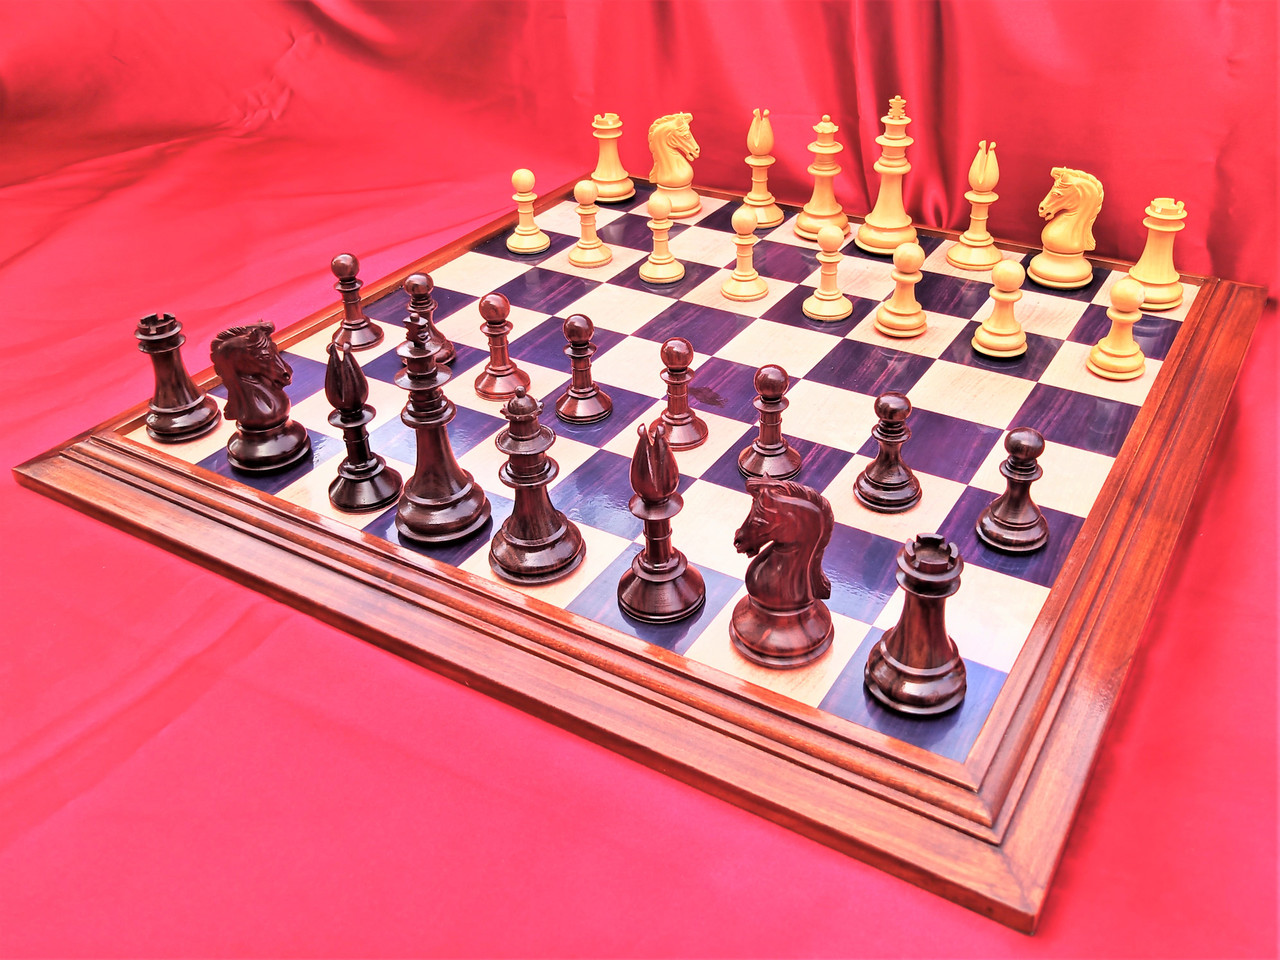 """Royal Knights of Camelot Staunton Luxury Chess set with 102mm (4.00"""") King in Rosewood, 53cm (21"""") Chess Board & FREE OFFERS"""